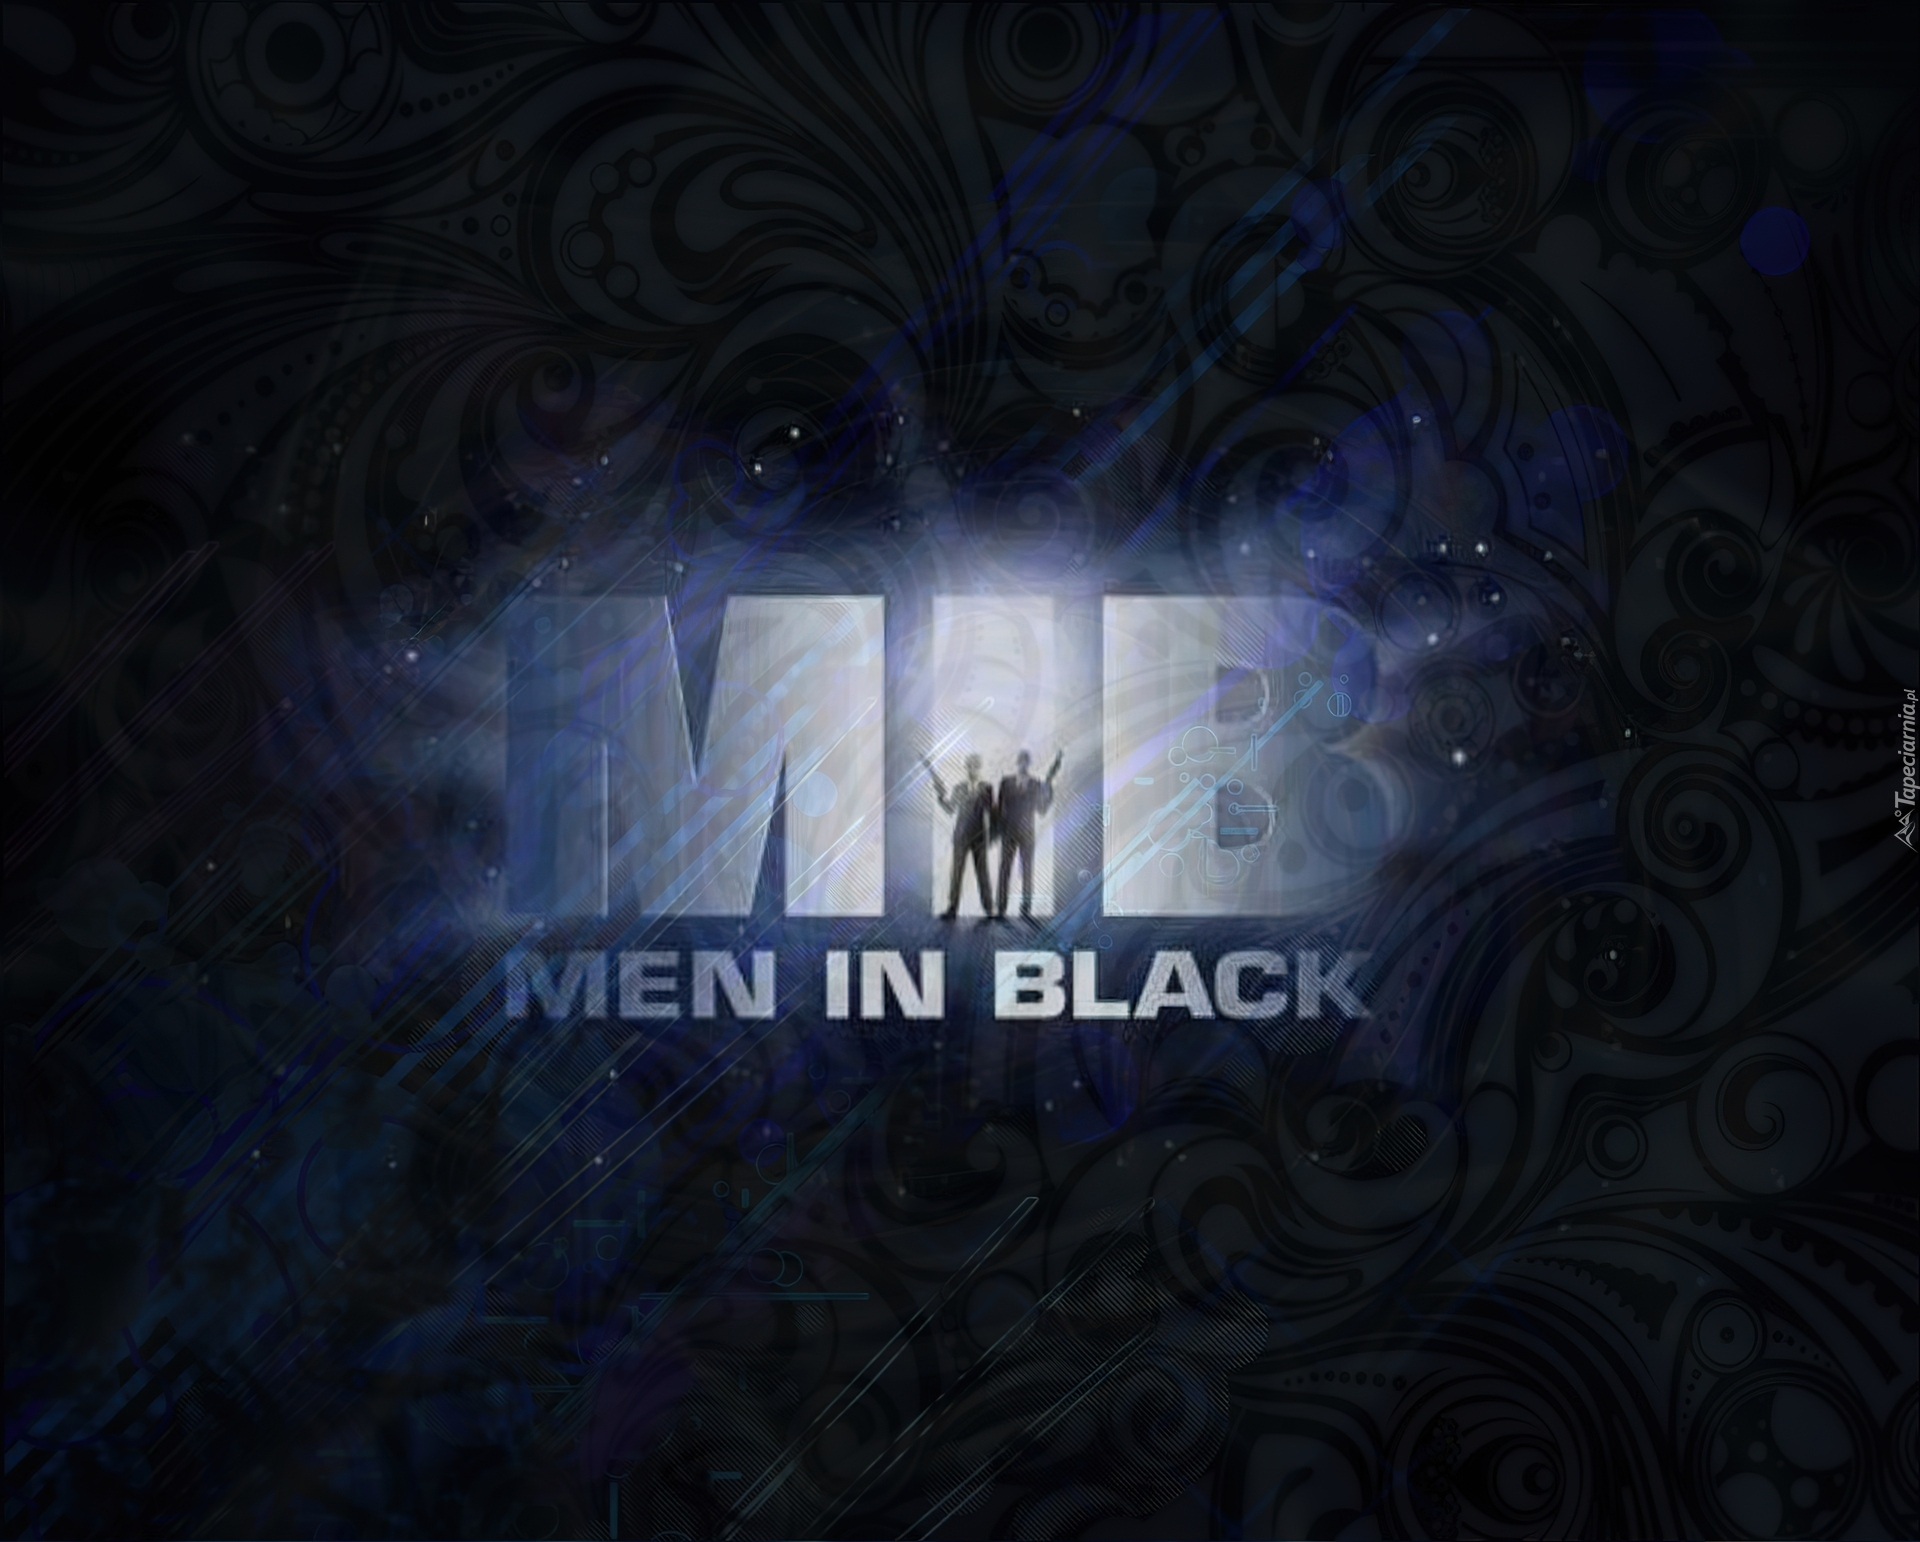 Men in Black, Logo, Film